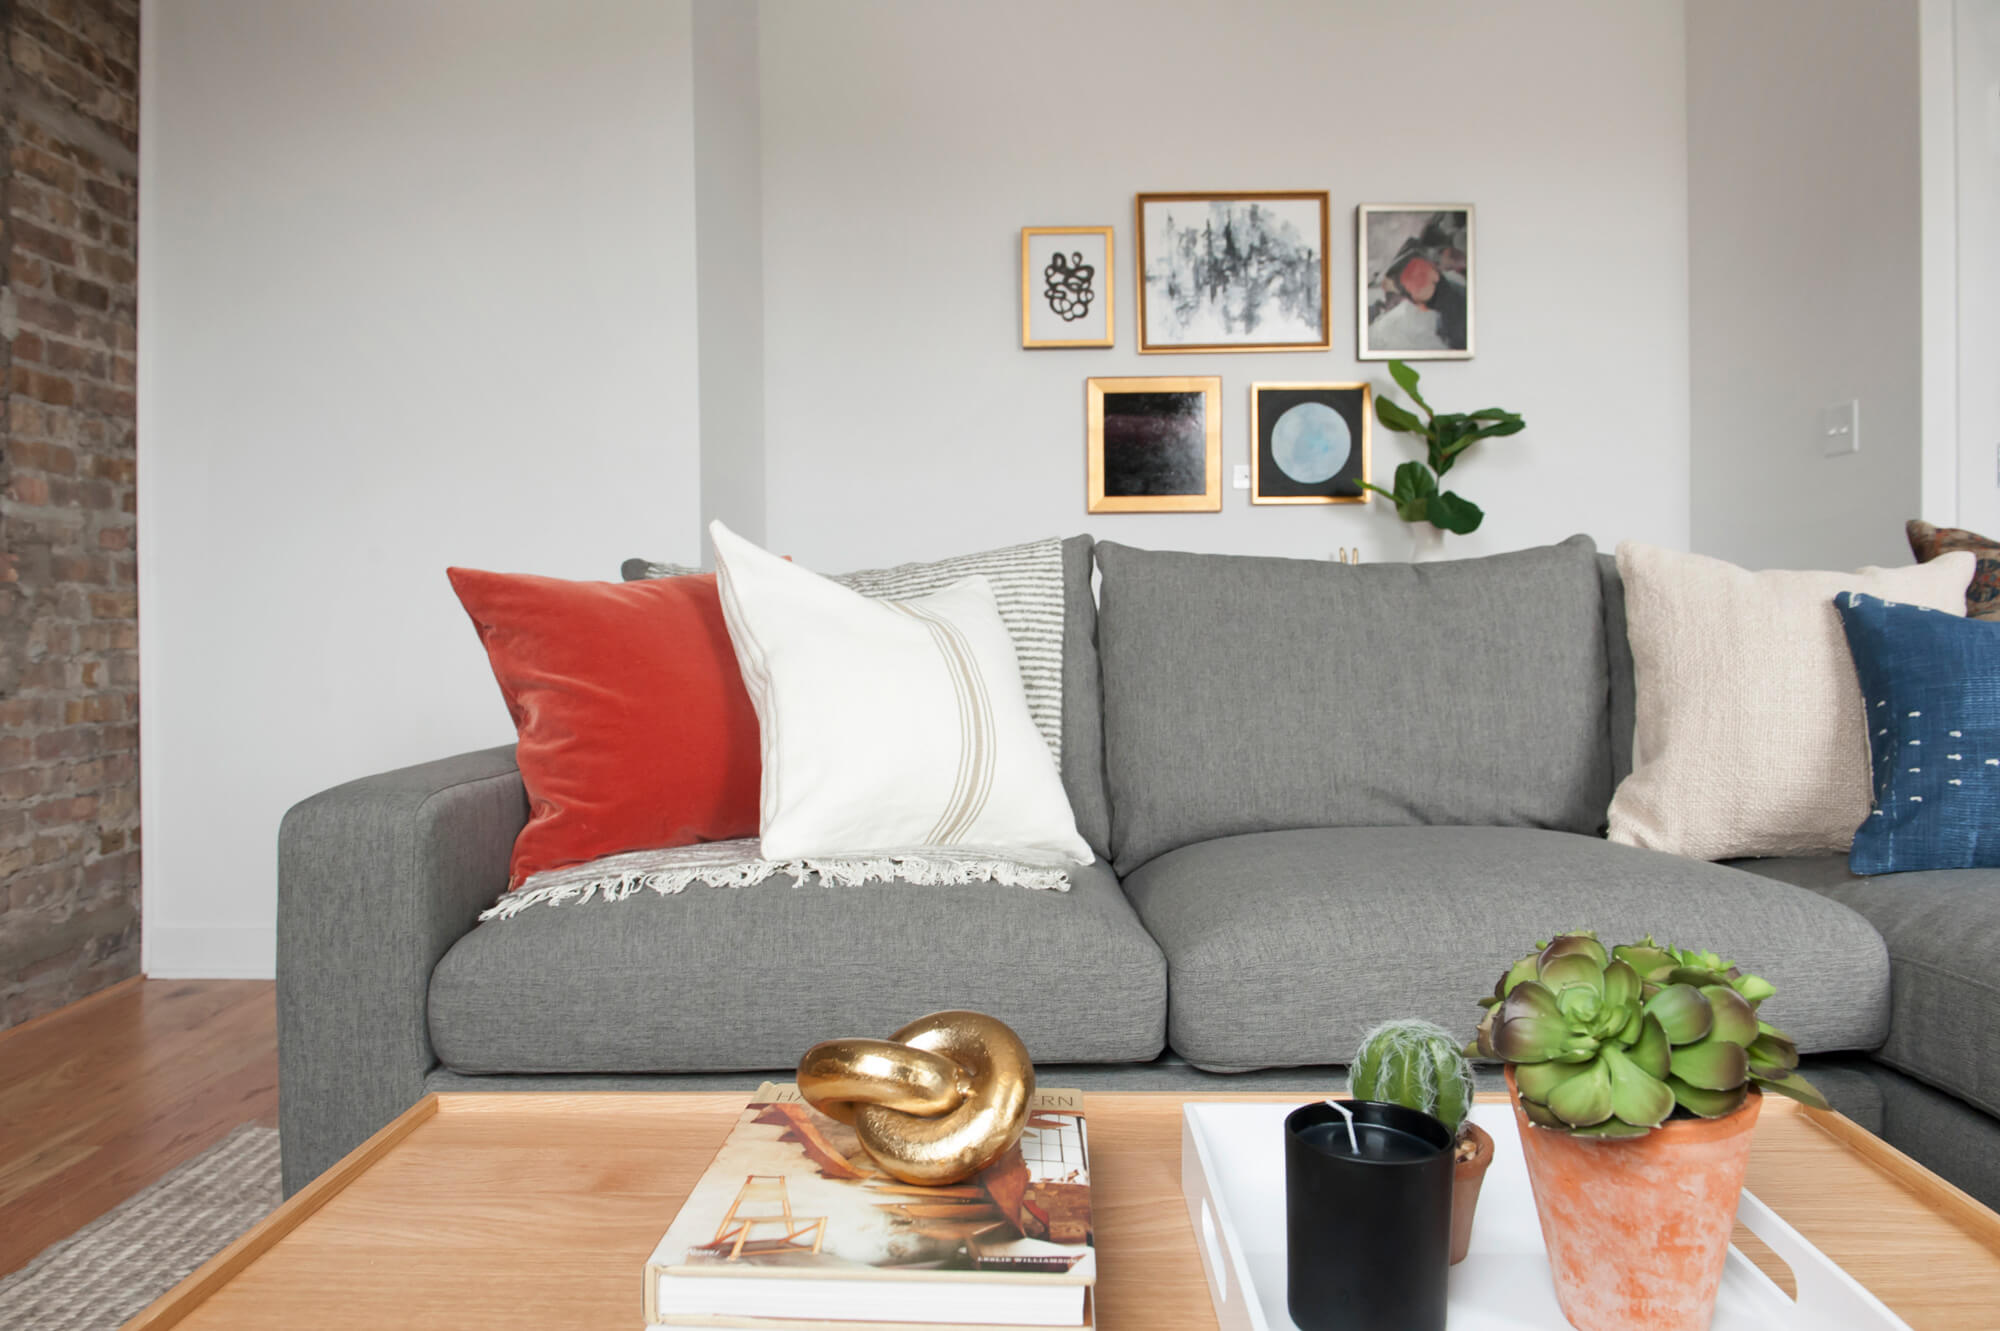 The perfect pop of terra-cotta in the picture, pillow, and plant pot.